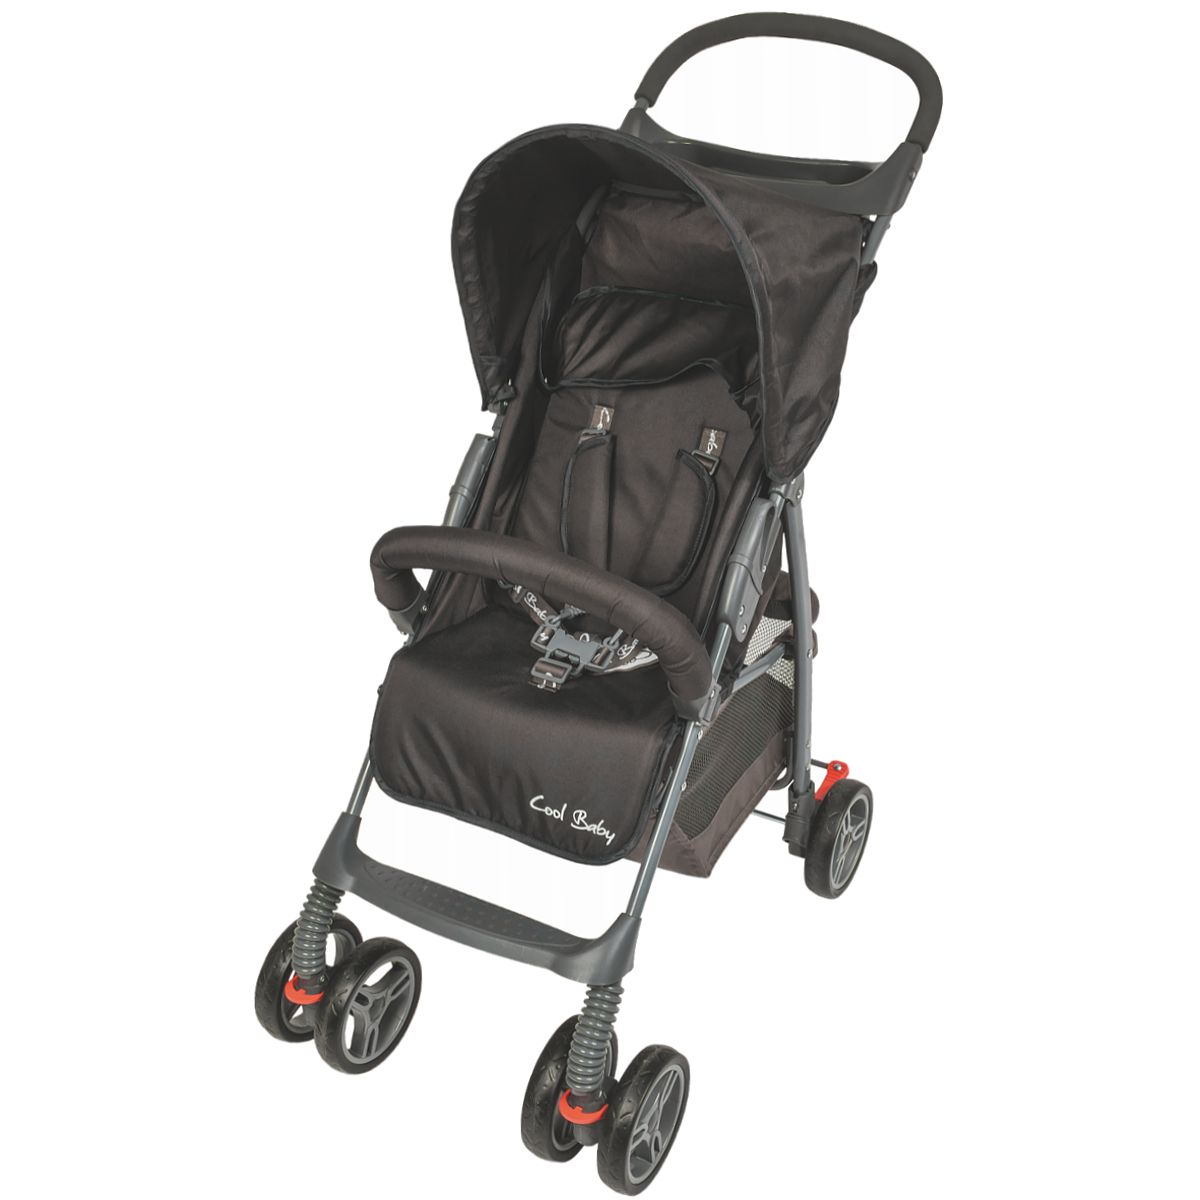 kinderwagen buggy shopper sportwagen jogger babywagen. Black Bedroom Furniture Sets. Home Design Ideas